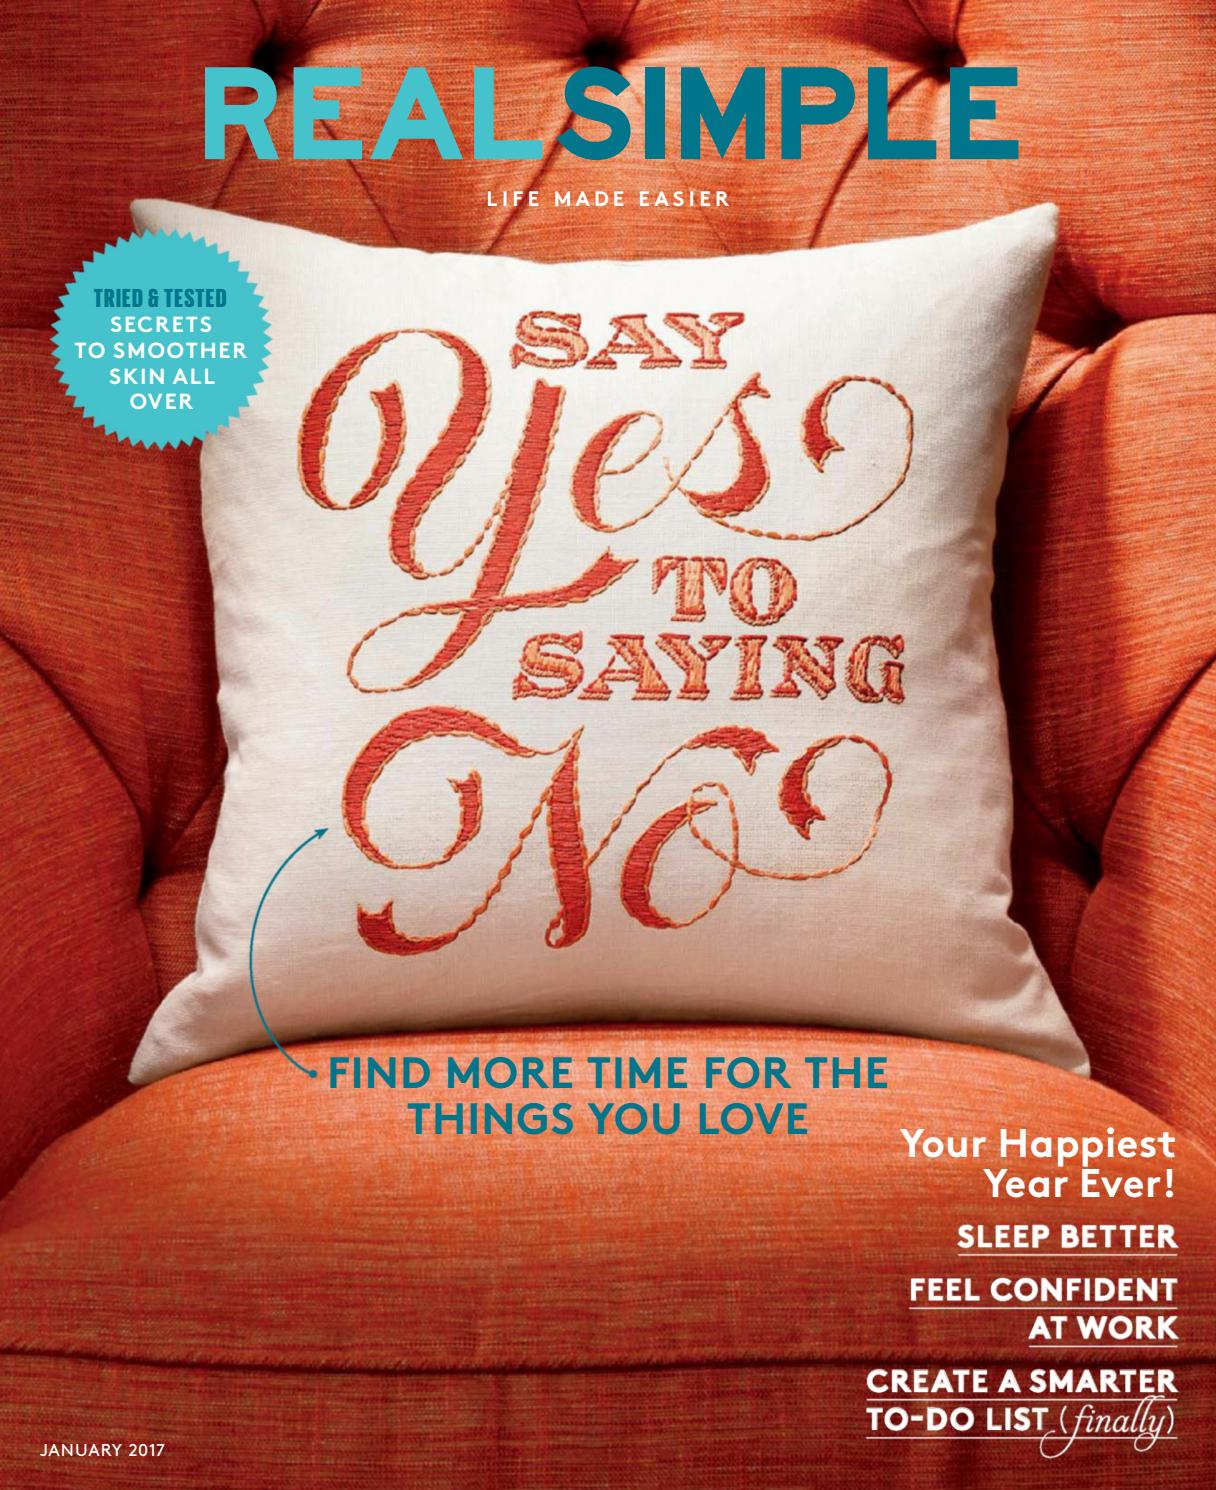 Real simple - LIFE MADE EASY by Vietsbay Store - issuu